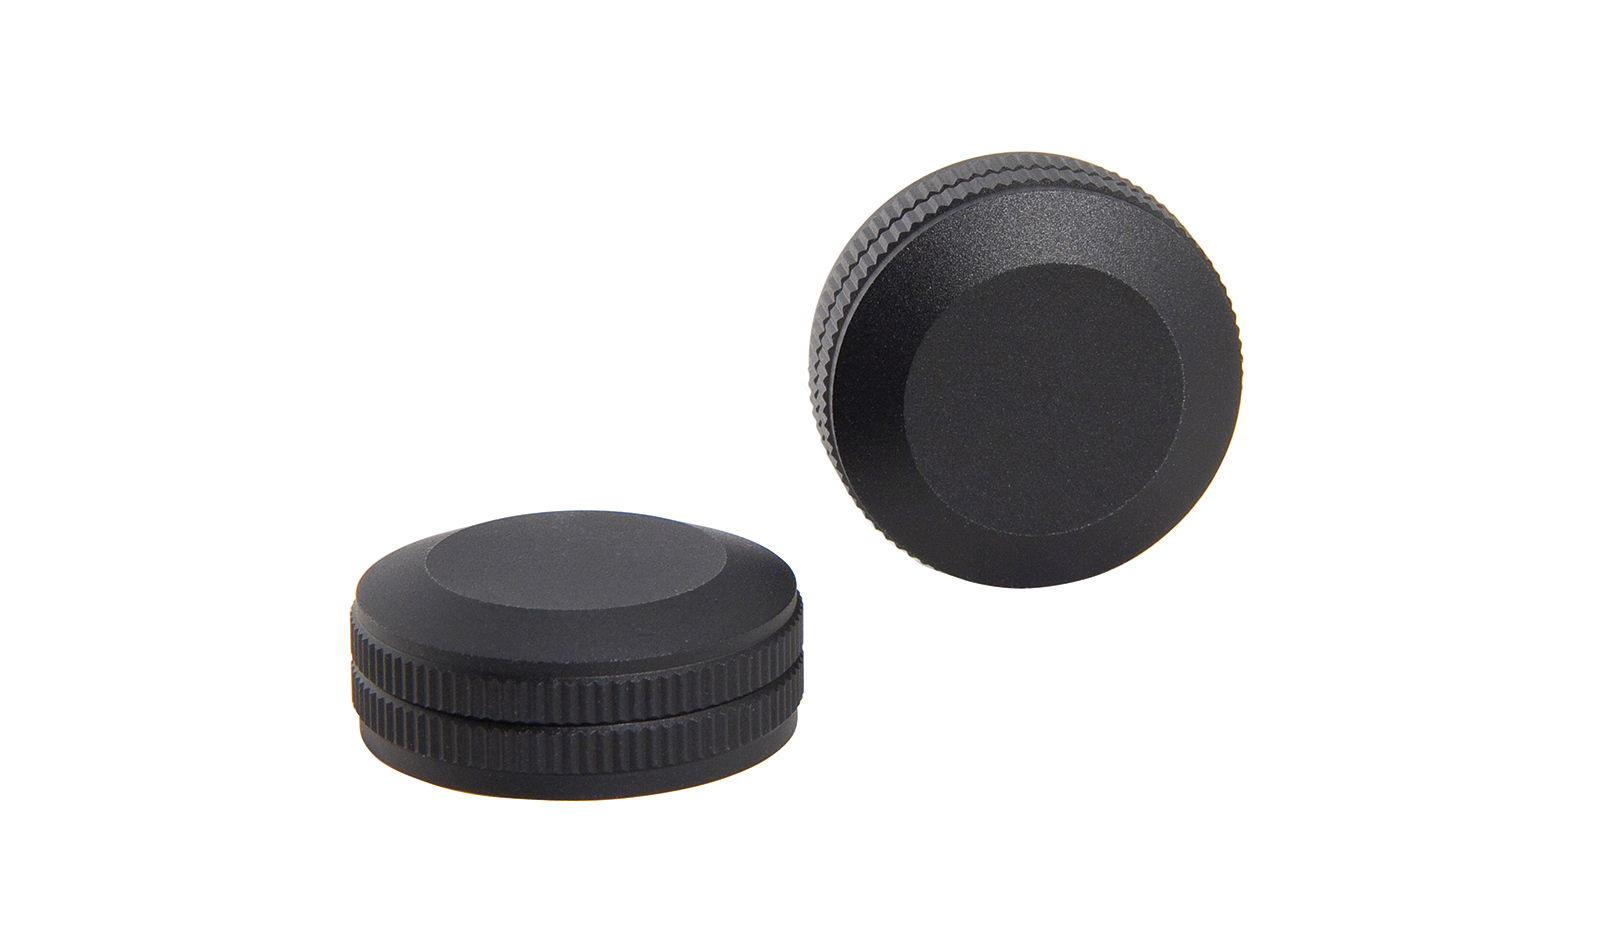 Trijicon<sup>®</sup> Adjuster Cap Covers for  AccuPoint<sup>®</sup> 3-9x40 and 2.5-10x56